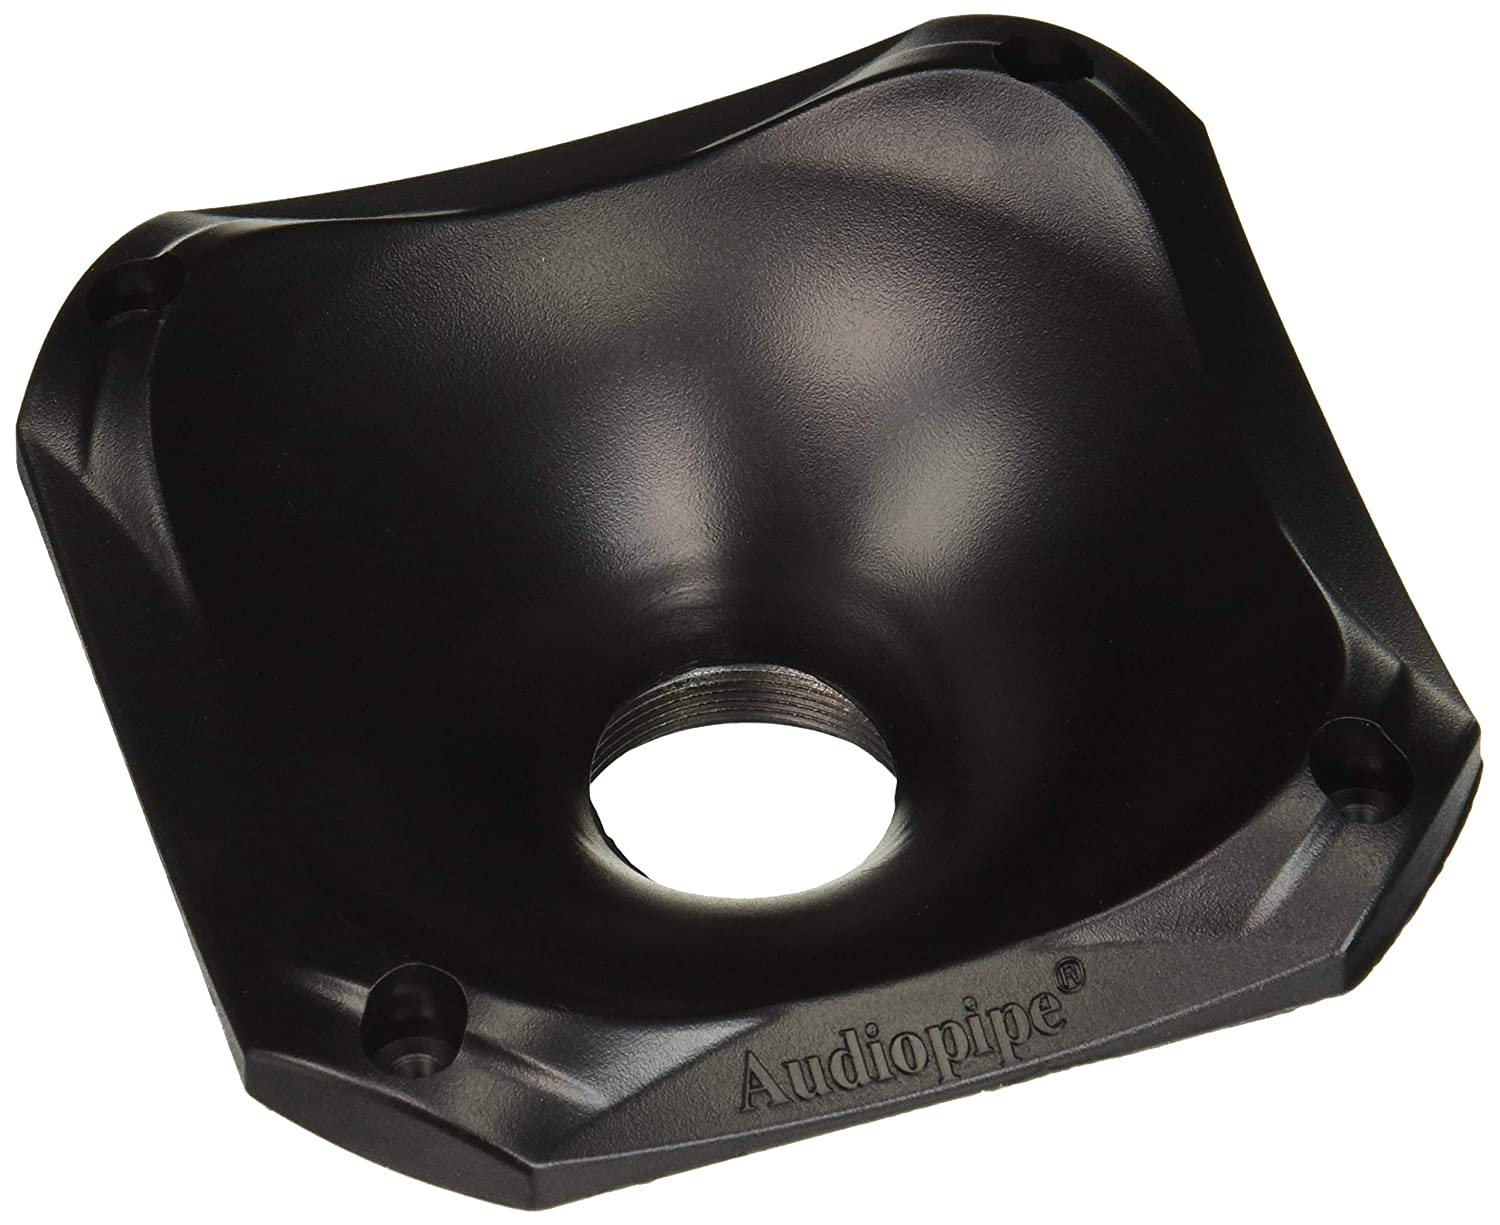 Sold Each Audiopipe APH4545H High Frequency Plastic Horn